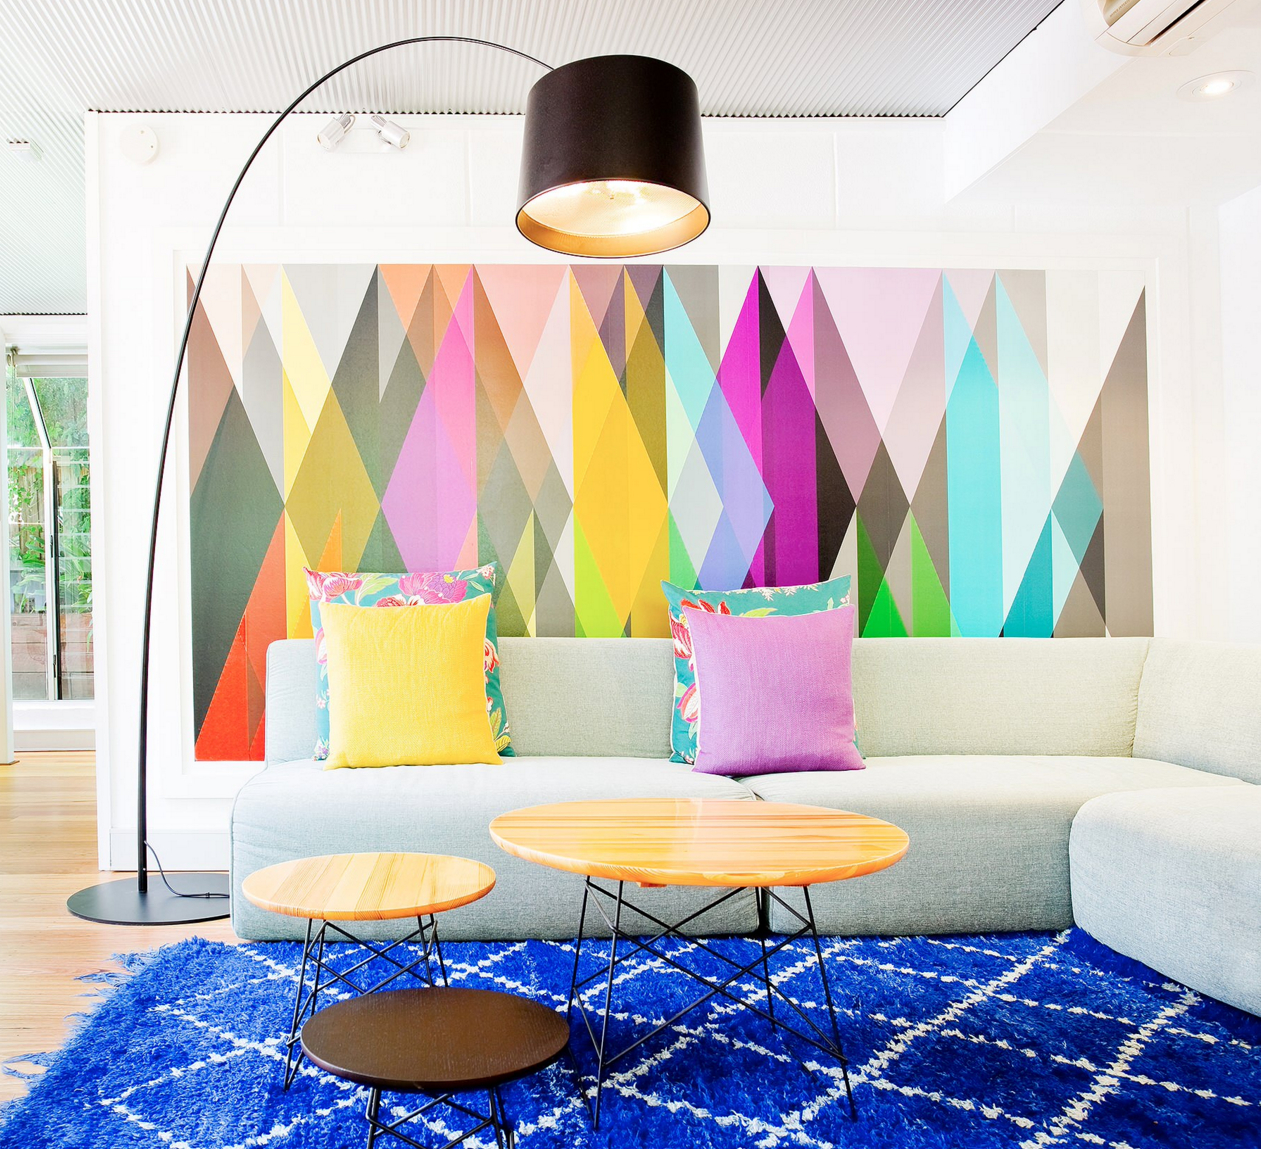 25 Dazzling Geometric Walls For The Modern Home – Freshome With Regard To Contemporary Geometric Wall Decor (View 2 of 30)